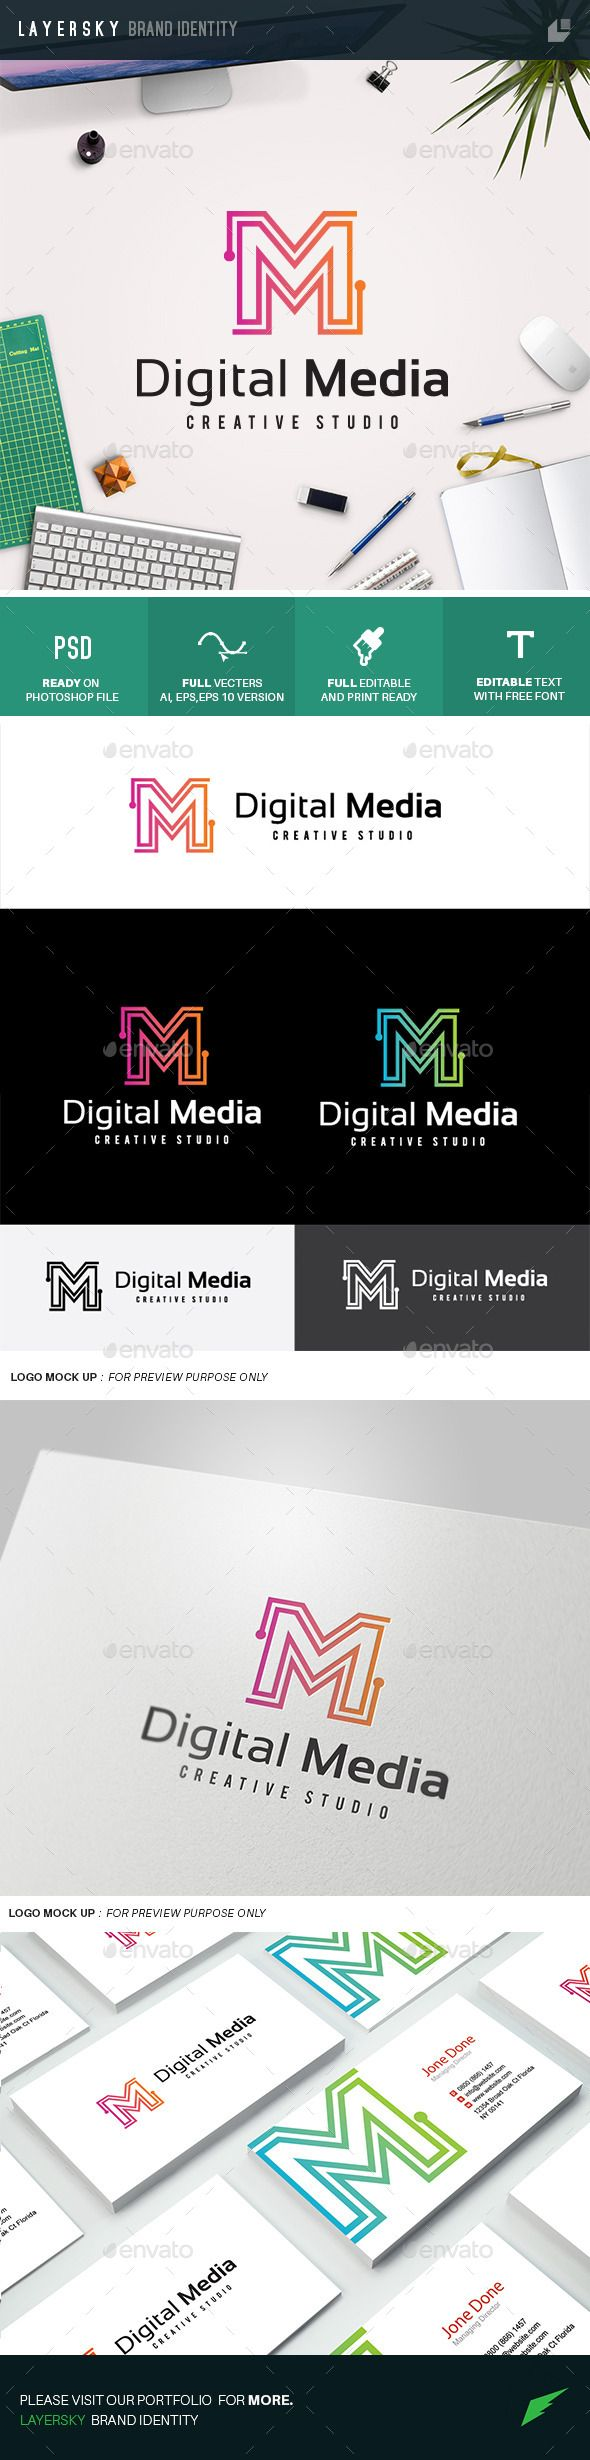 Digital Media - Logo Design Template Vector #logotype Download it here: http://graphicriver.net/item/digital-media/10989797?s_rank=1515?ref=nesto